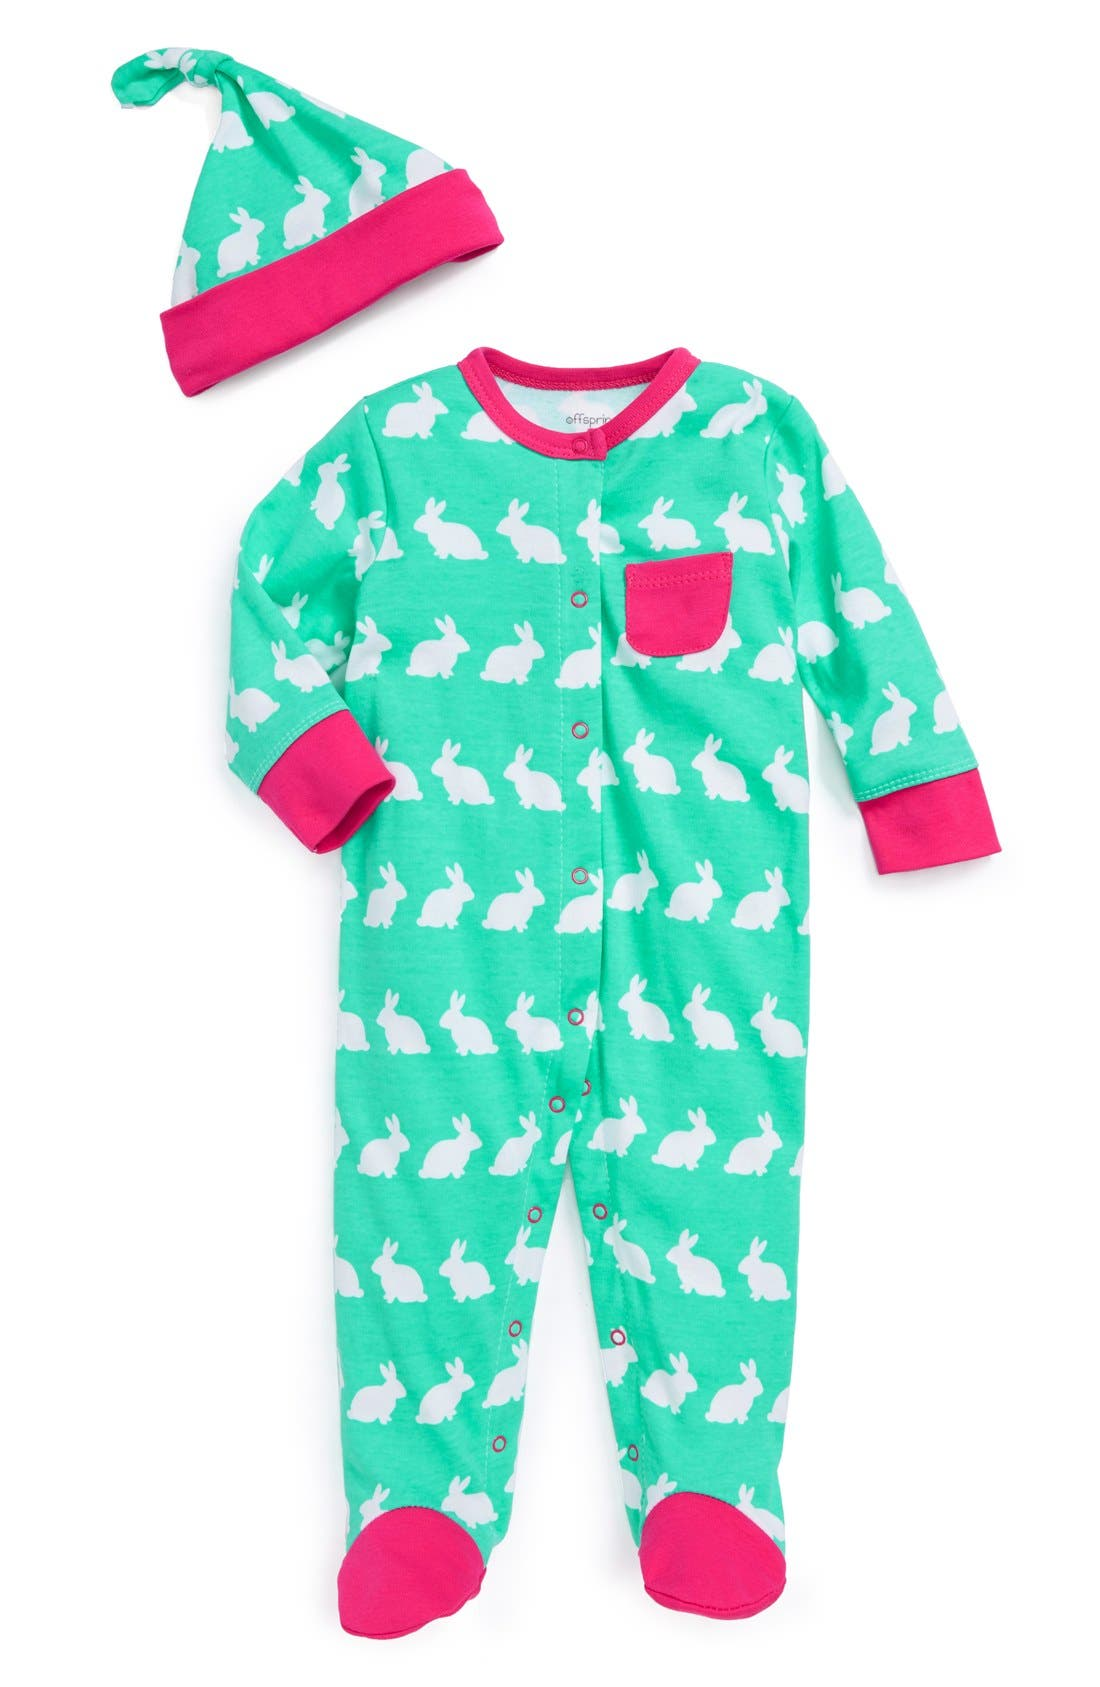 Main Image - Offspring 'Bunny' One-Piece & Hat (Baby Girls)